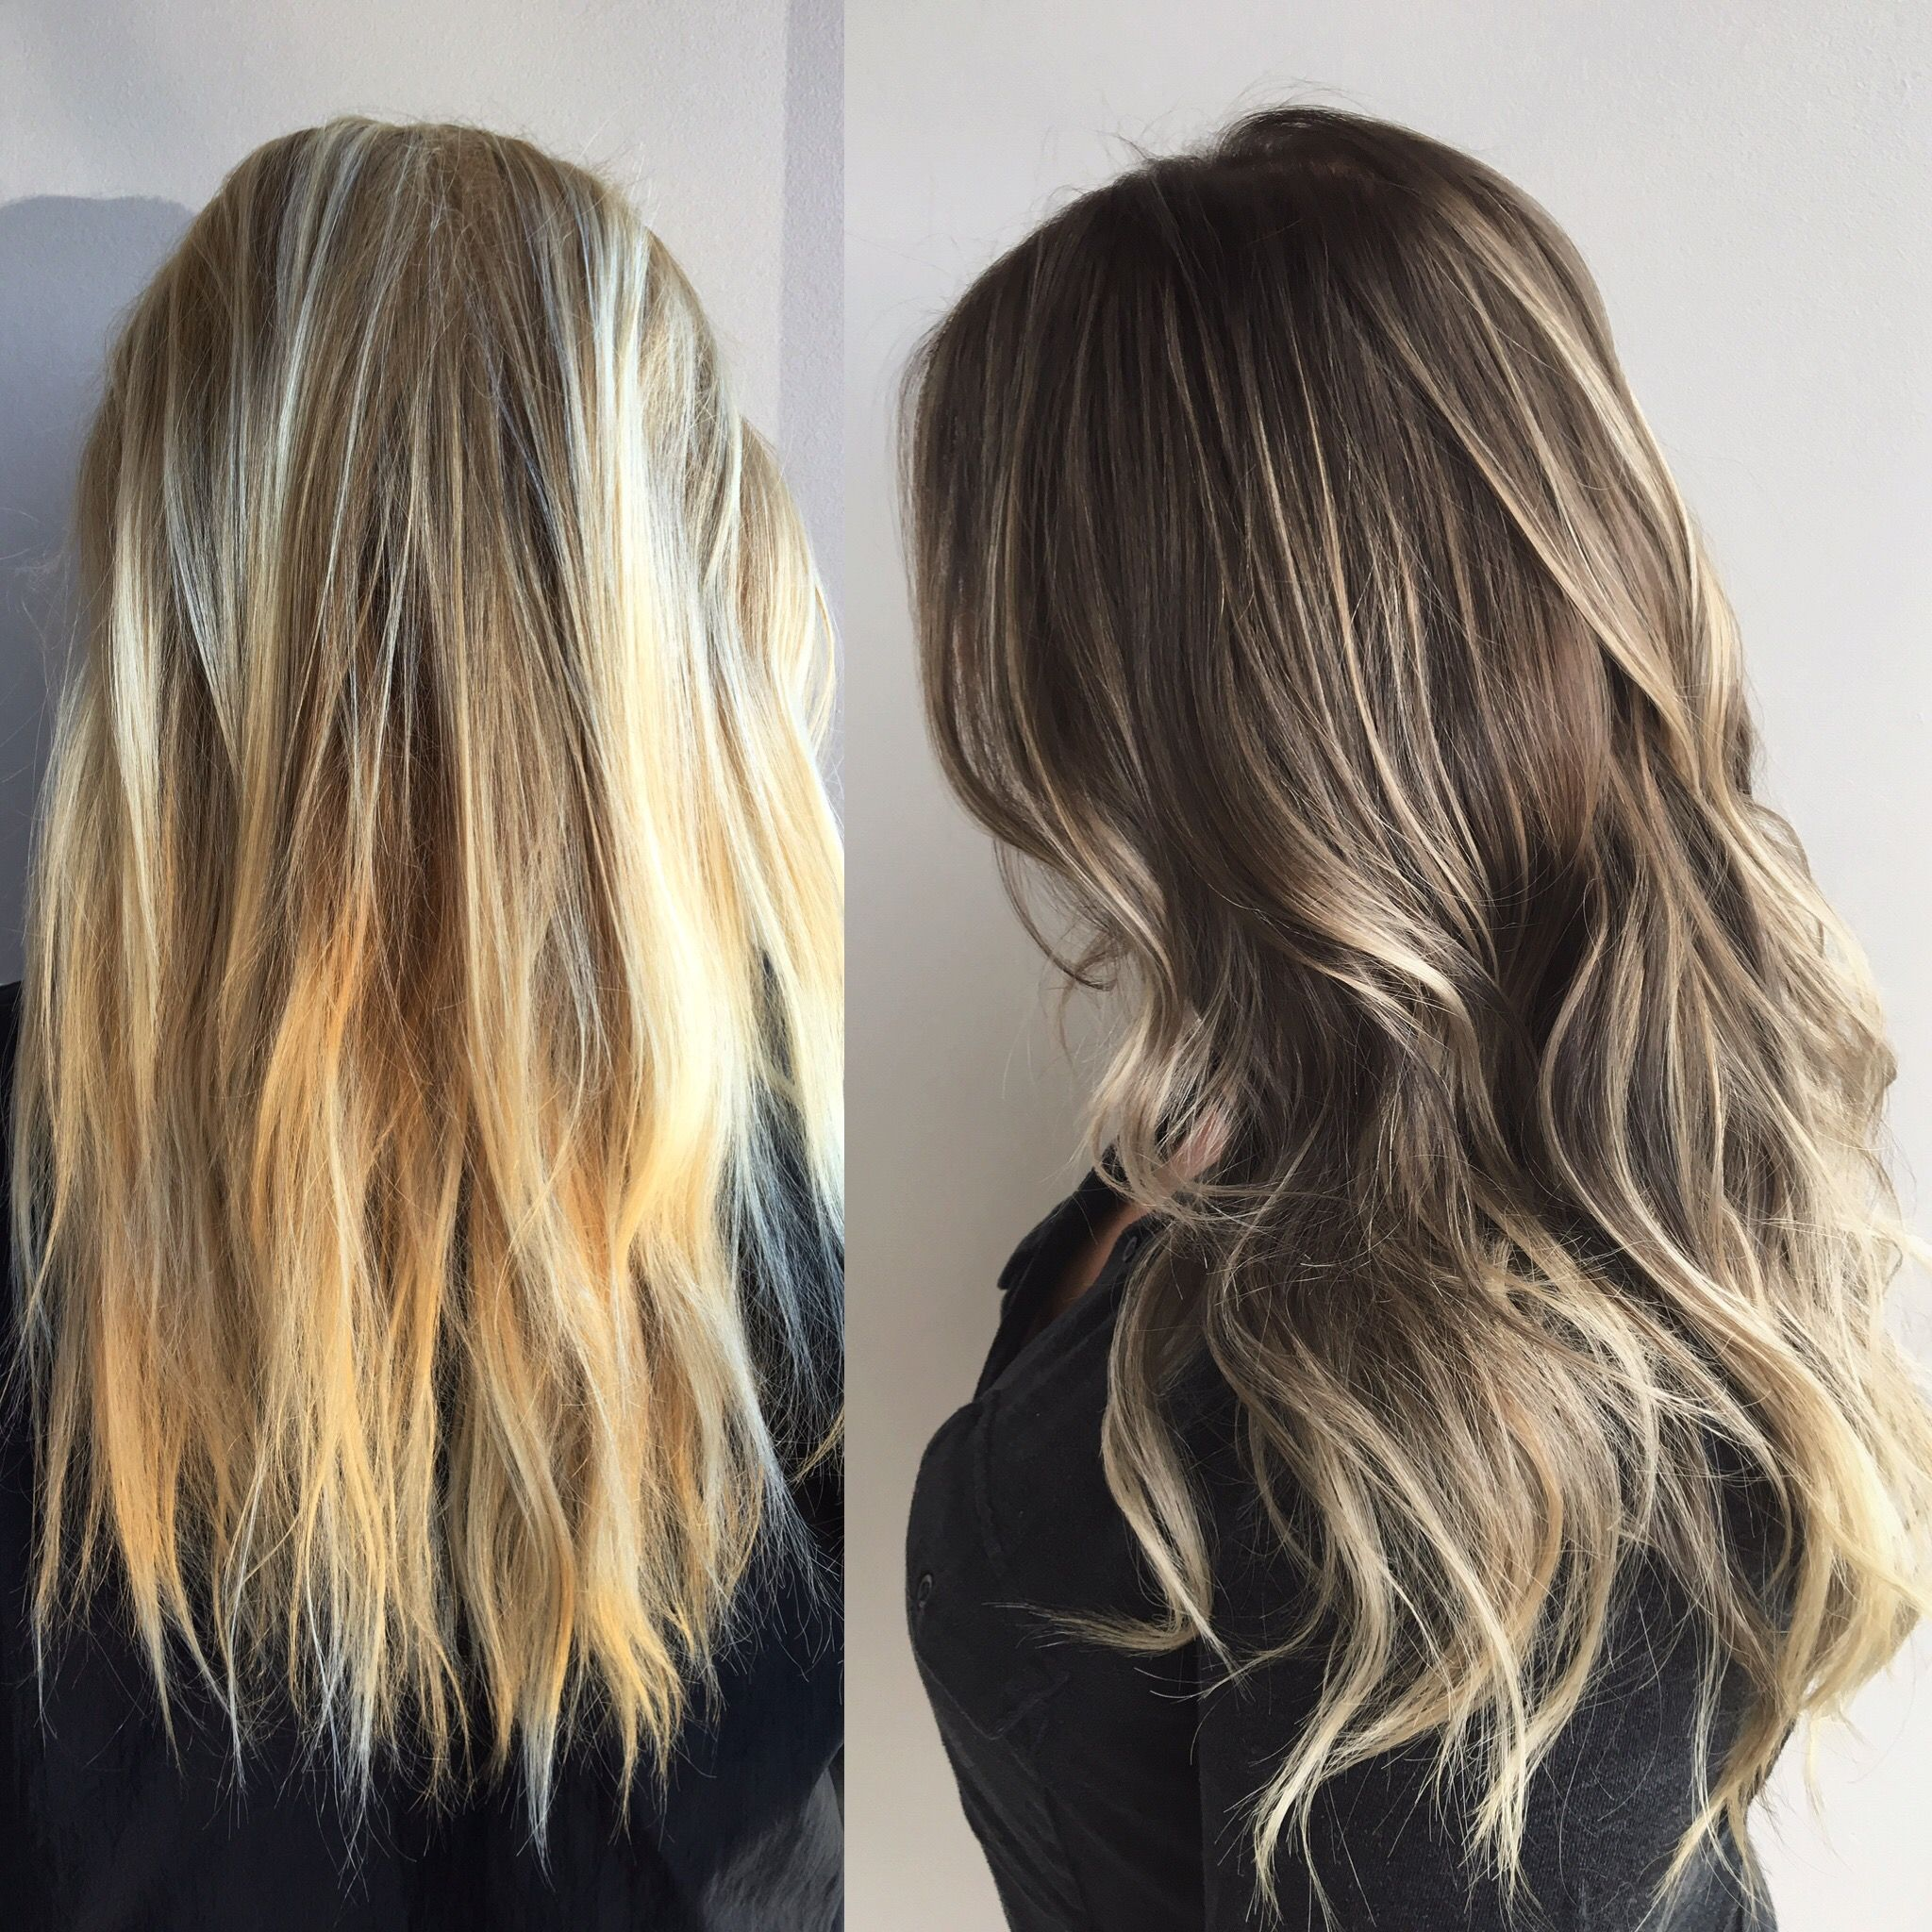 Before And After Blonde Hair To Brown Hair Blonde To Brown Secret Vail Hair Extentions Hair Transfo Cool Blonde Hair Hair Transformation Beauty Hair Makeup